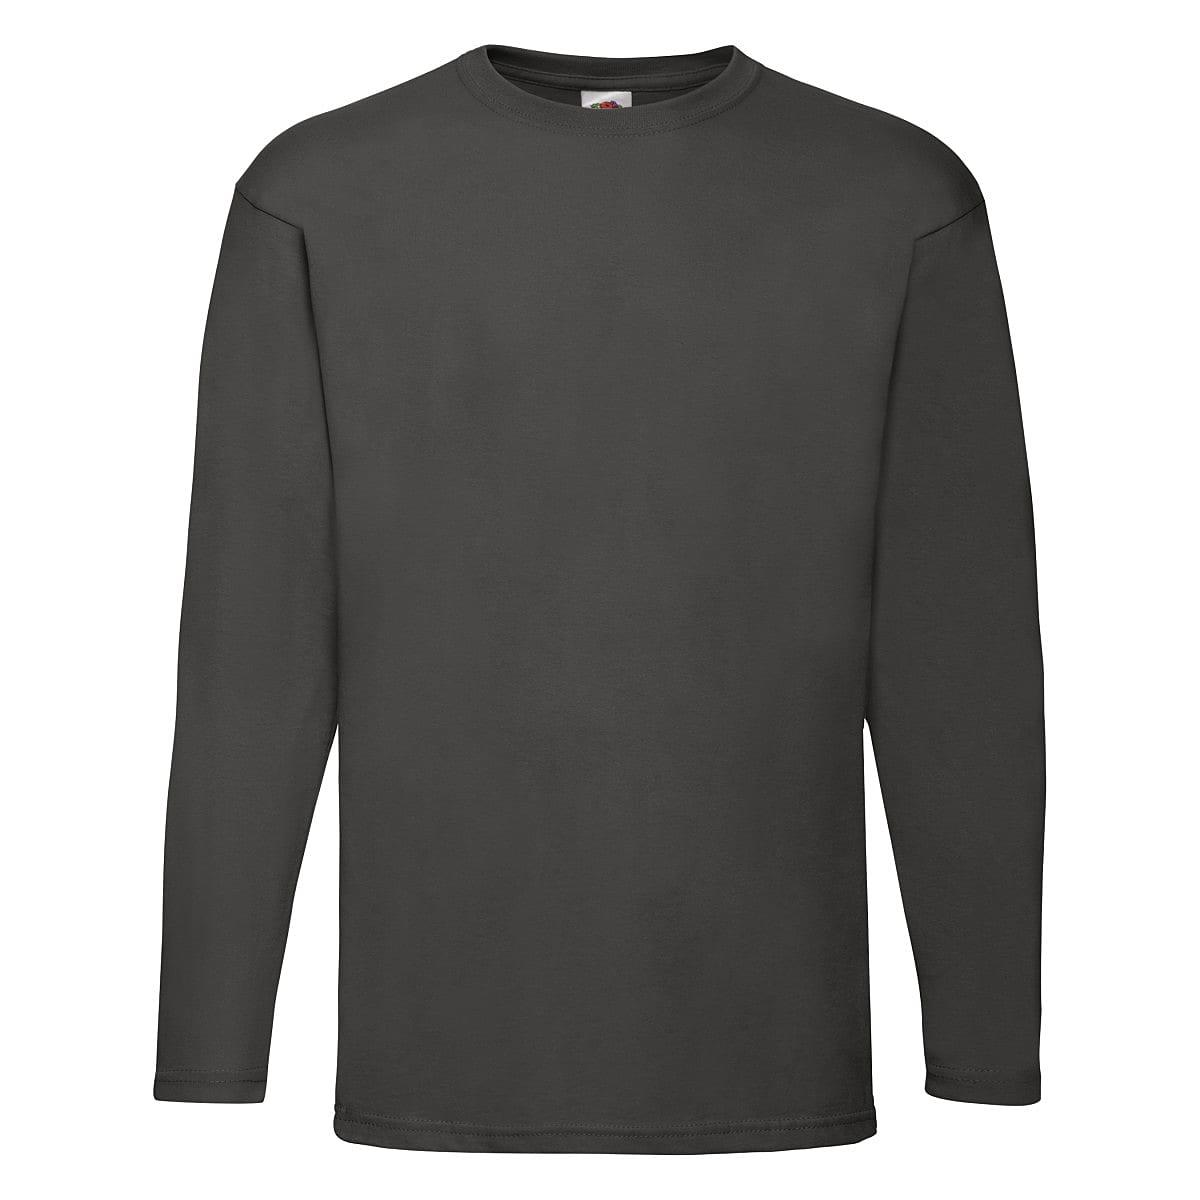 Fruit Of The Loom Valueweight Long-Sleeve T-Shirt in Light Graphite (Product Code: 61038)